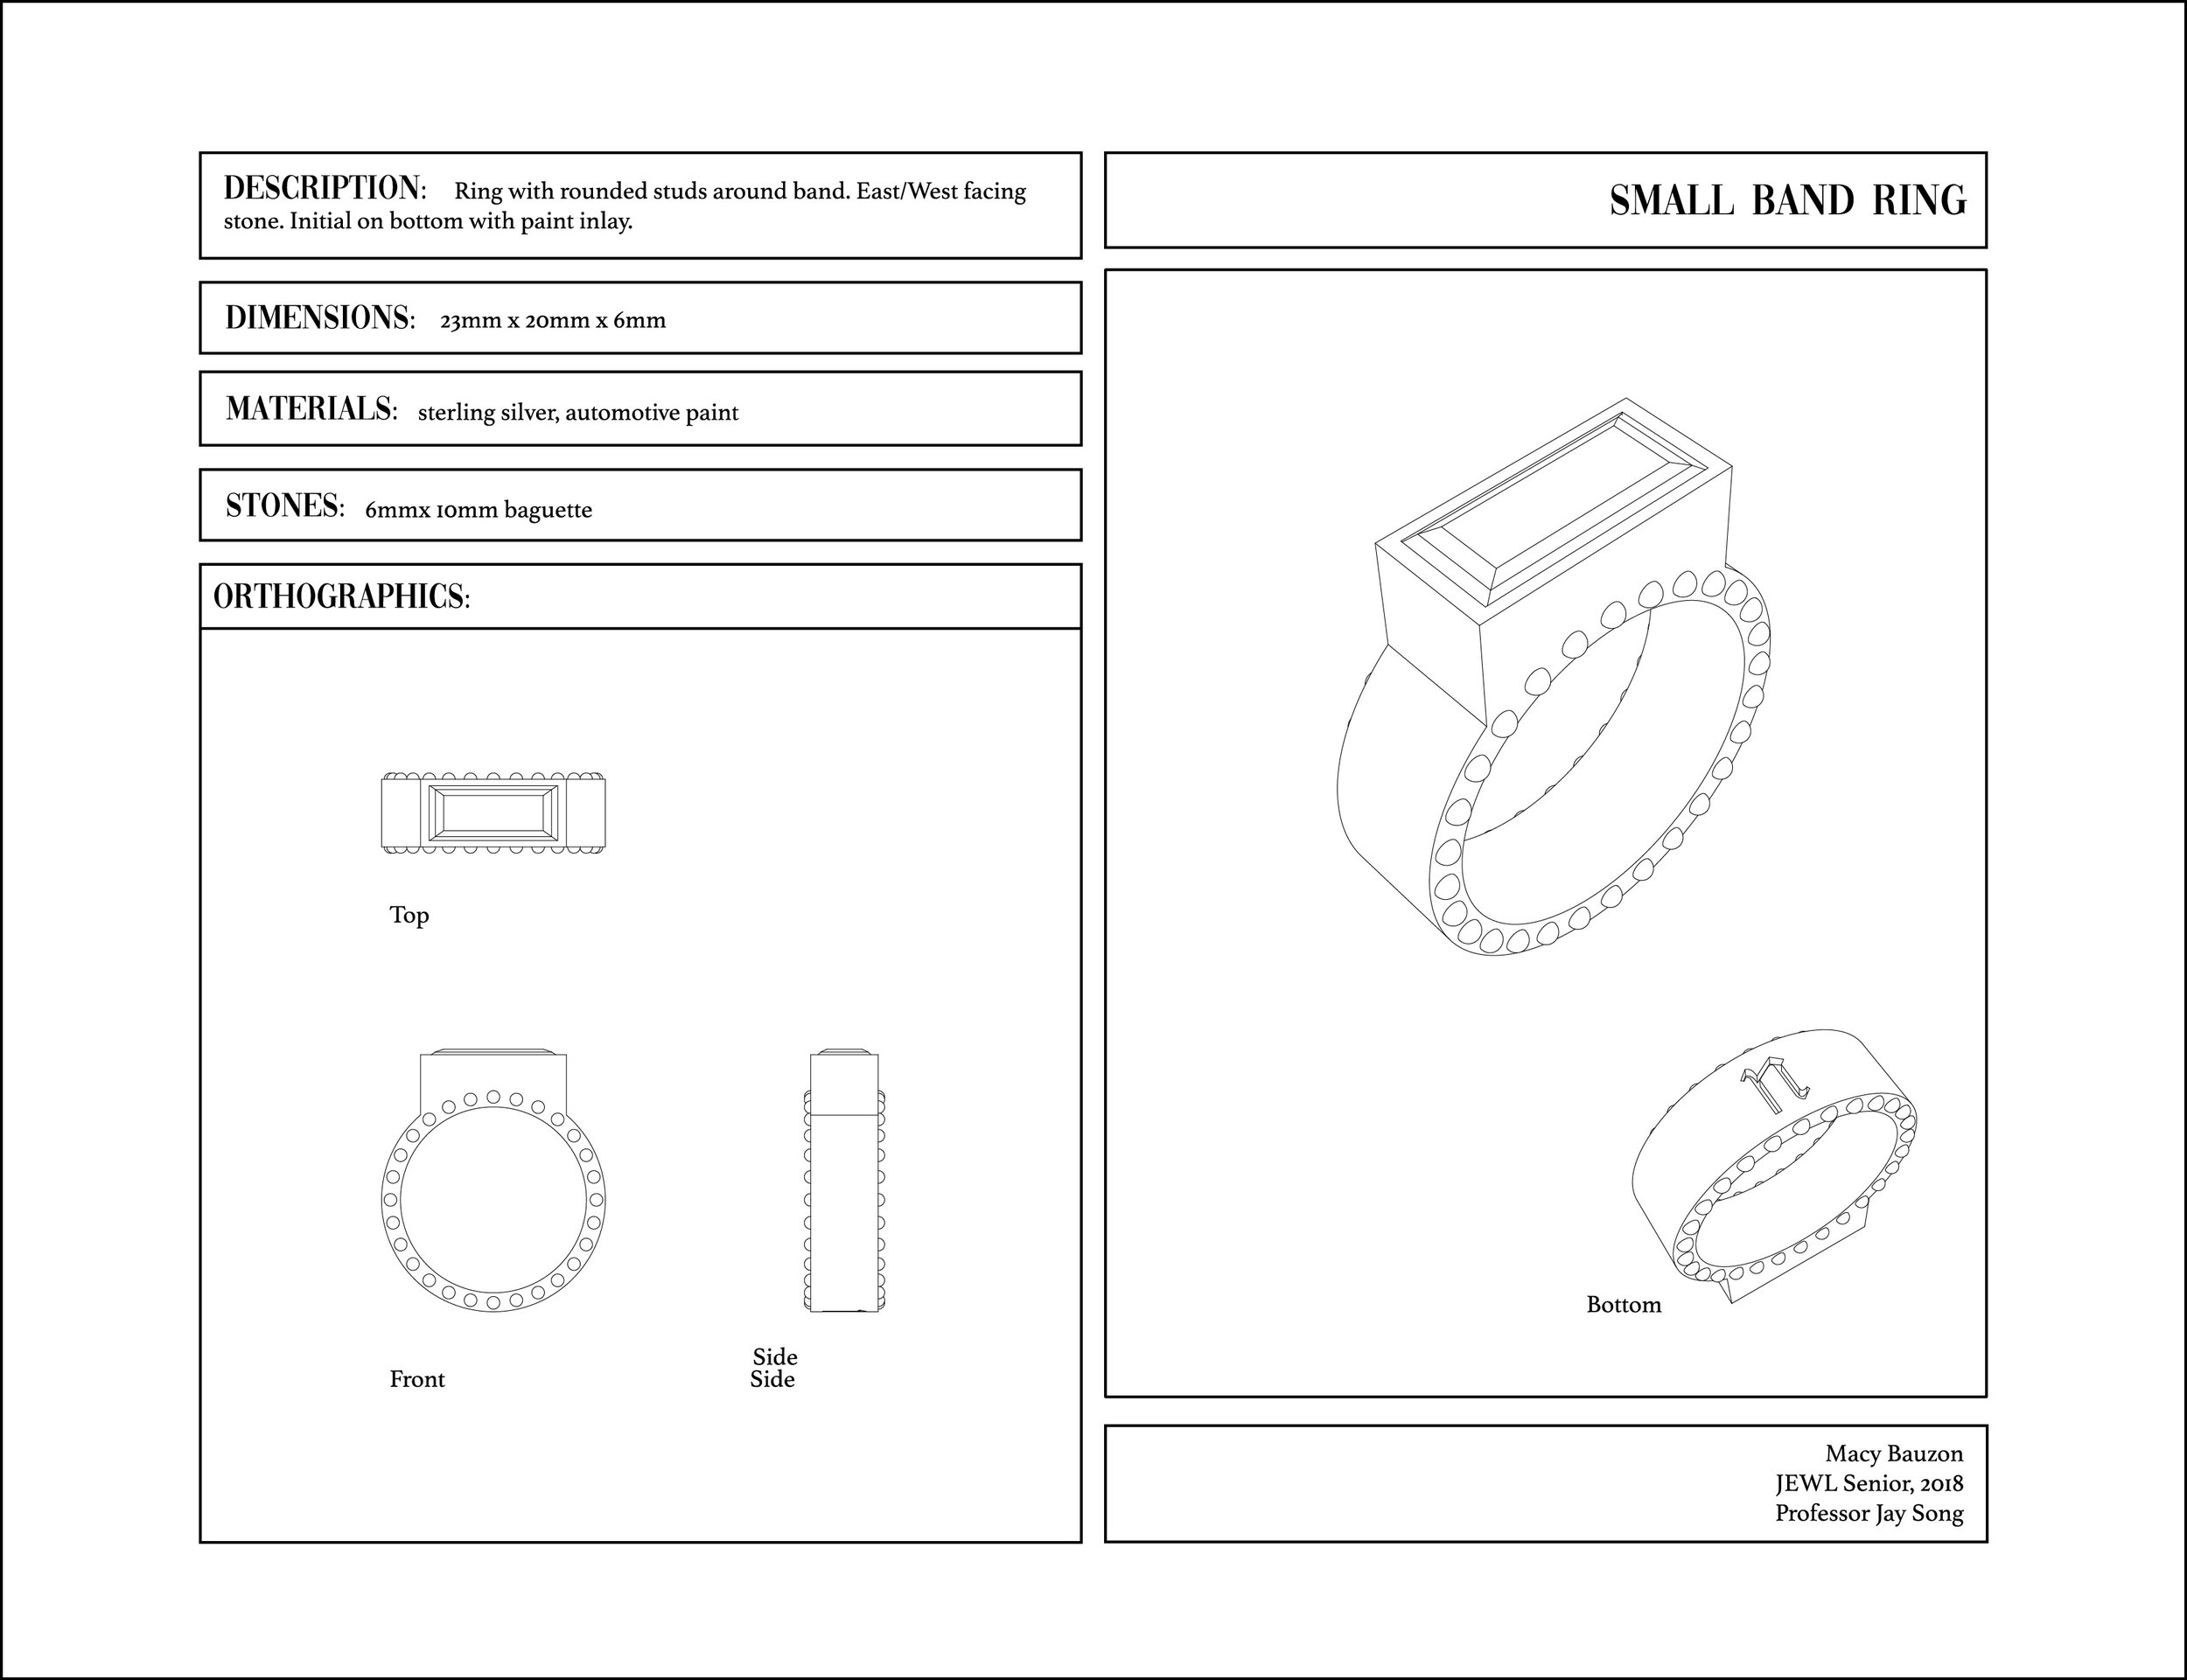 Small Band Ring Spec.jpg